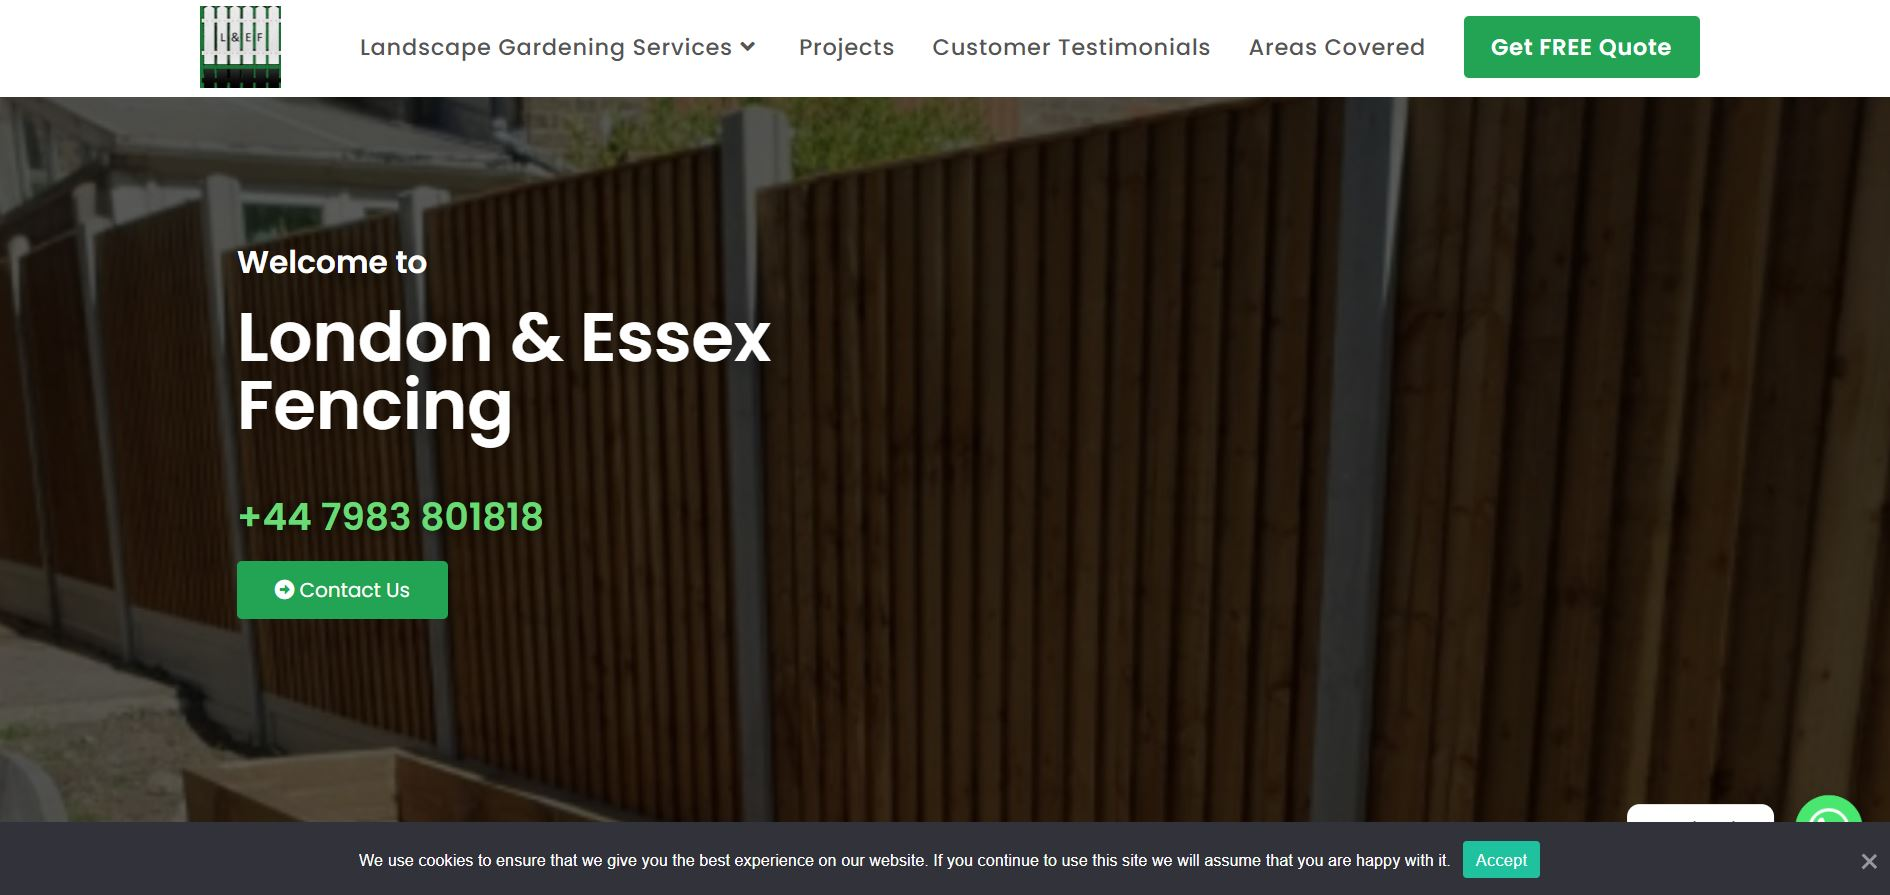 London and Essex Fencing